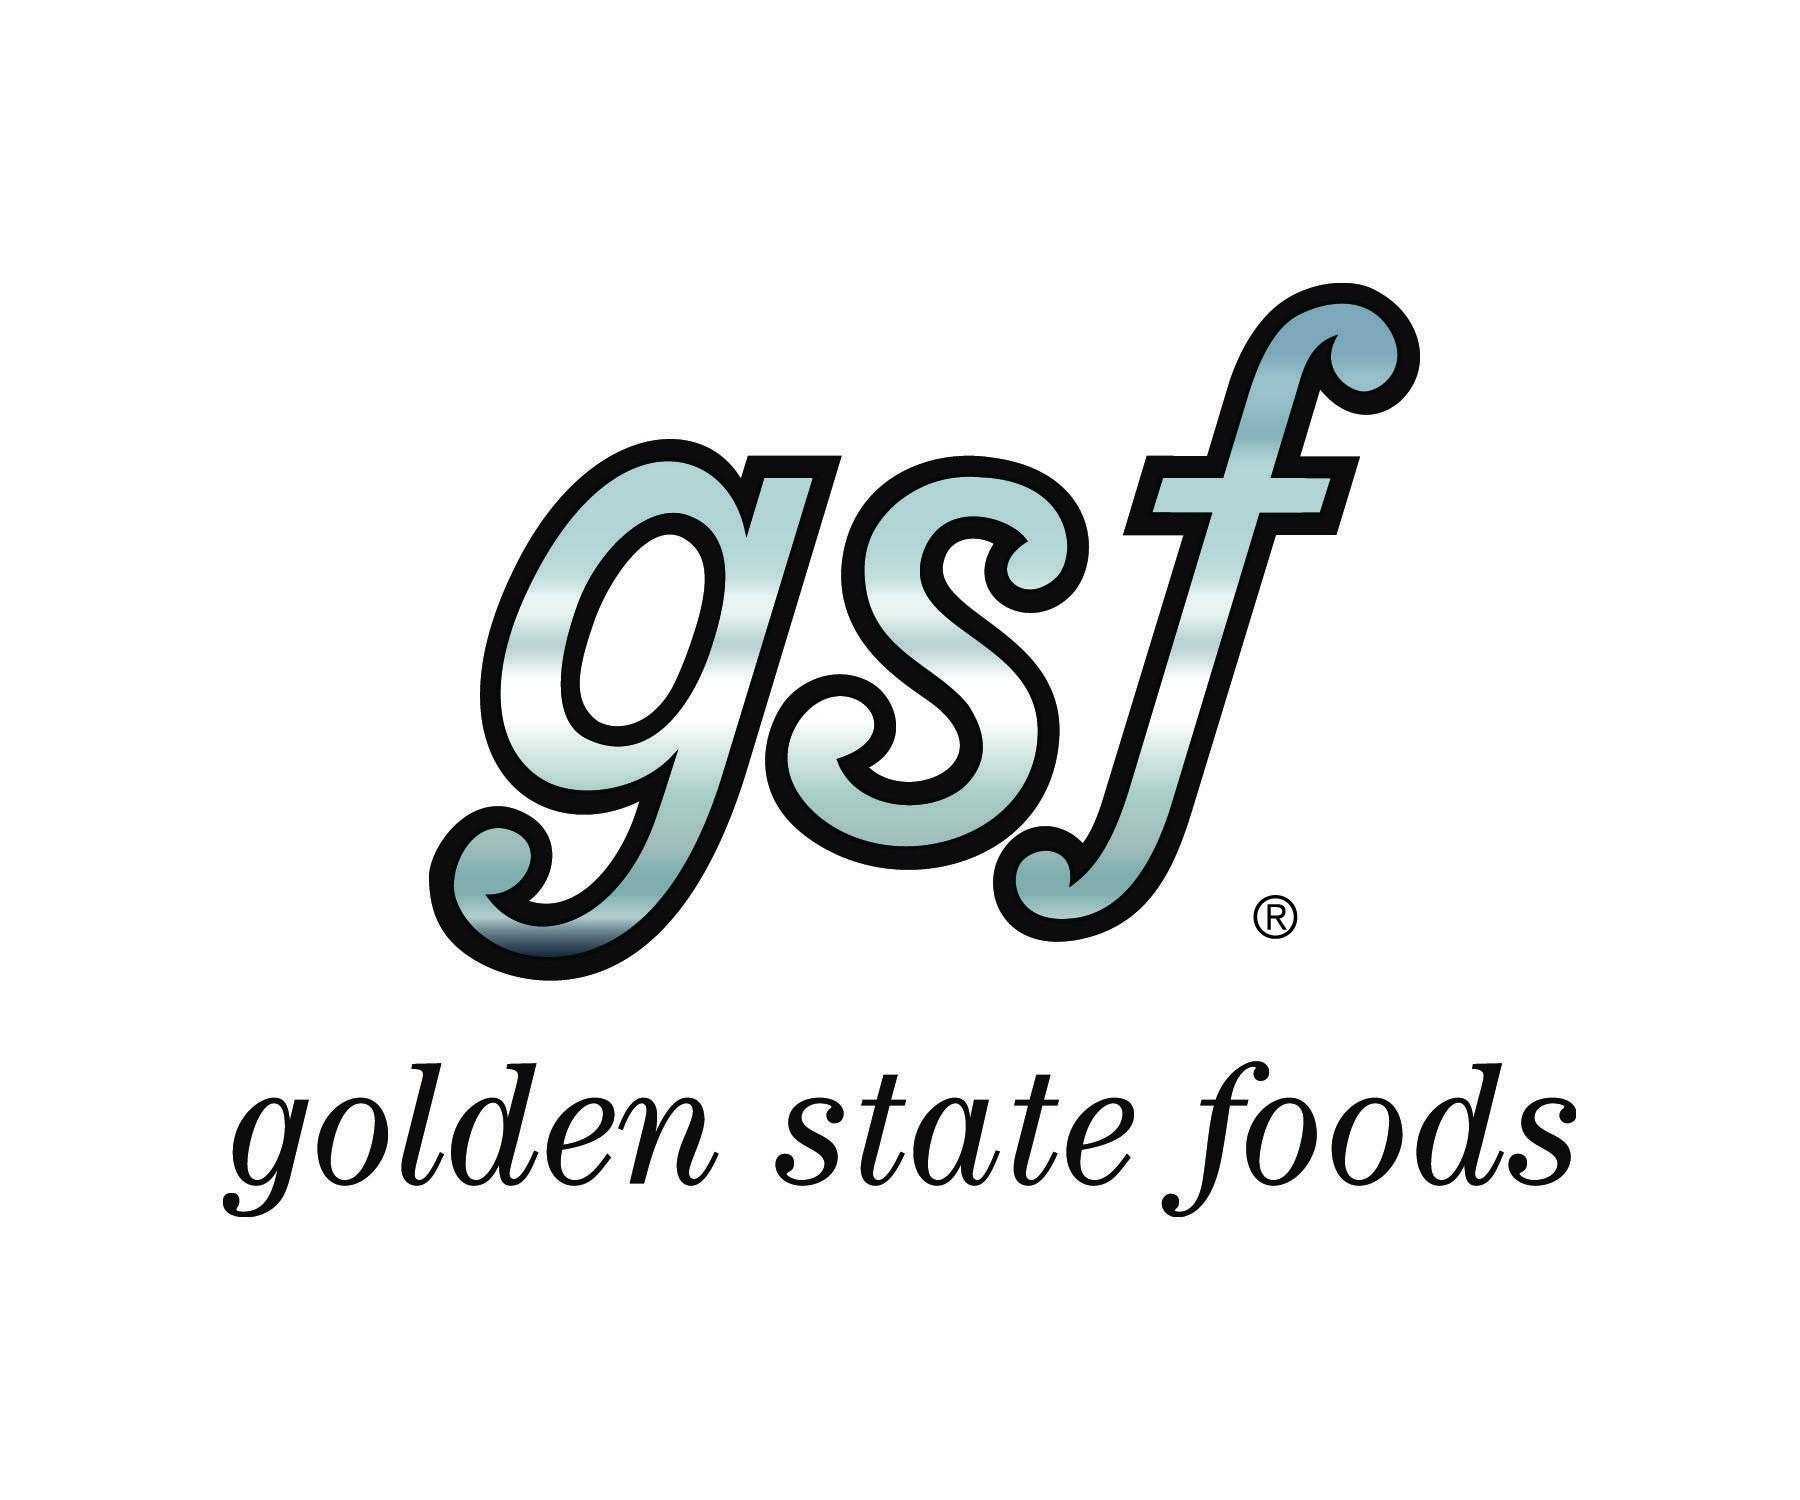 Golden State Foods company logo